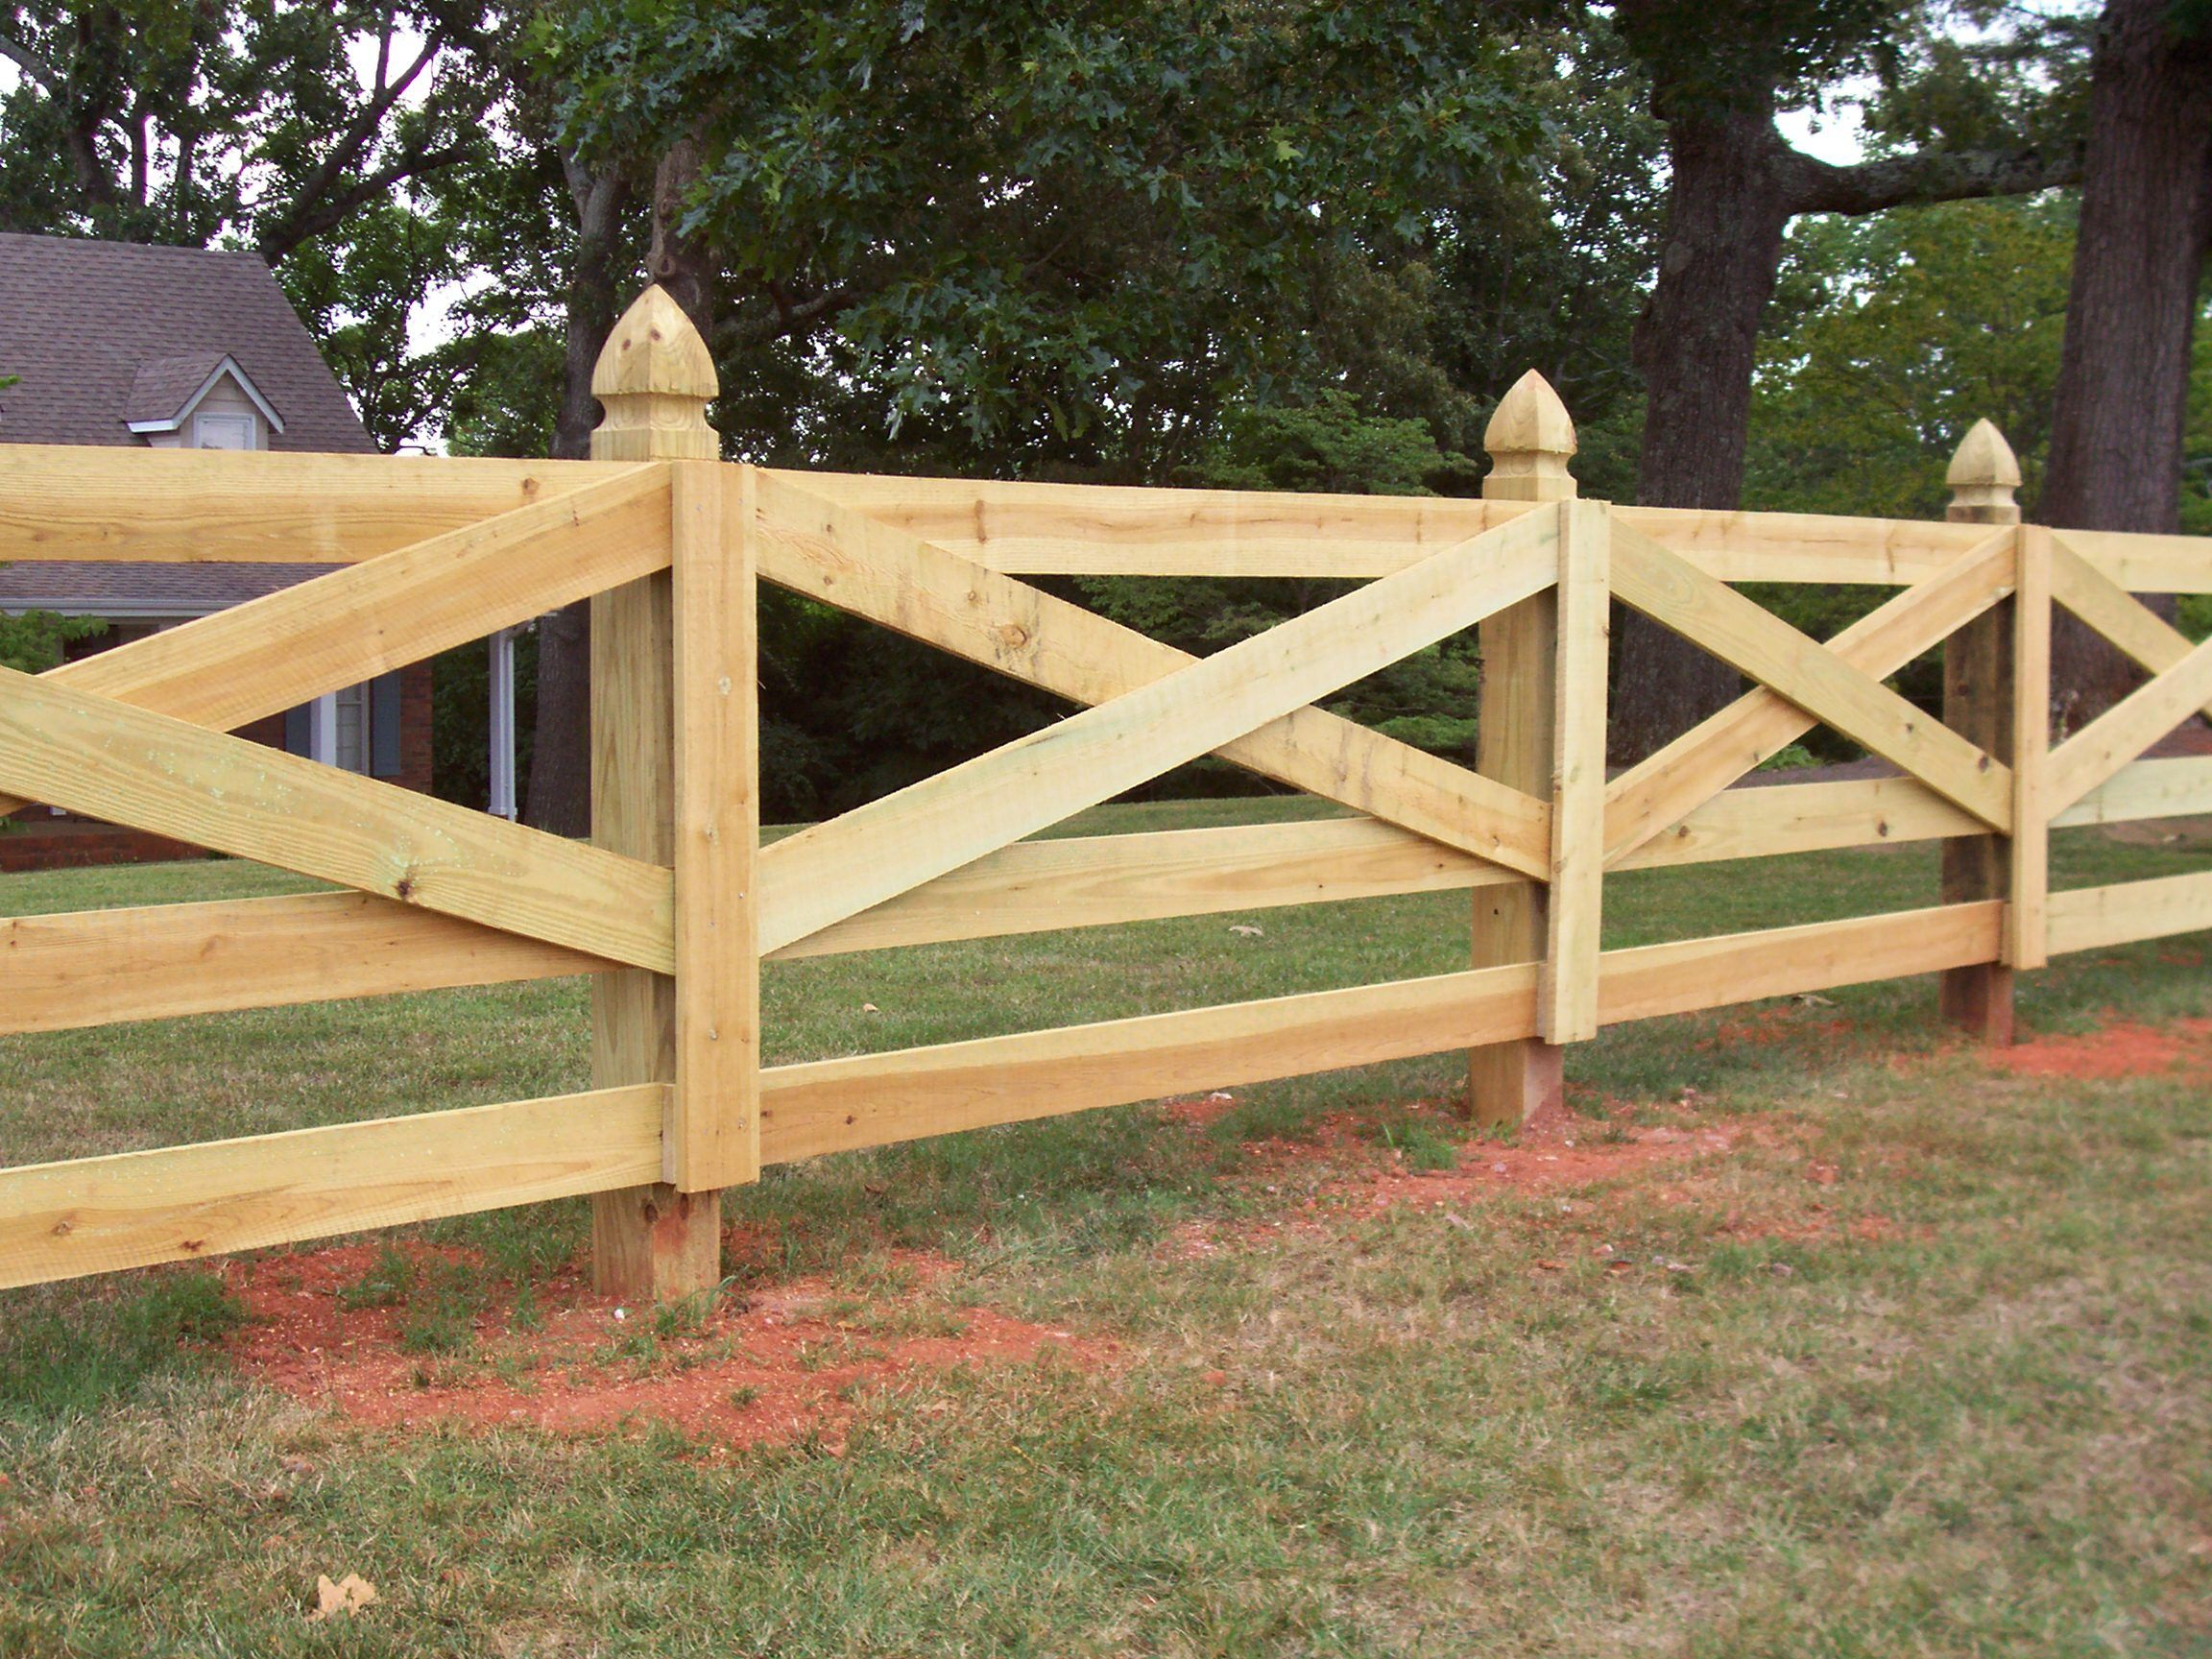 Super Privacy Fence Designs Gallery Includes Featured Fences Made From Many Types Of Materials And Features Diffe